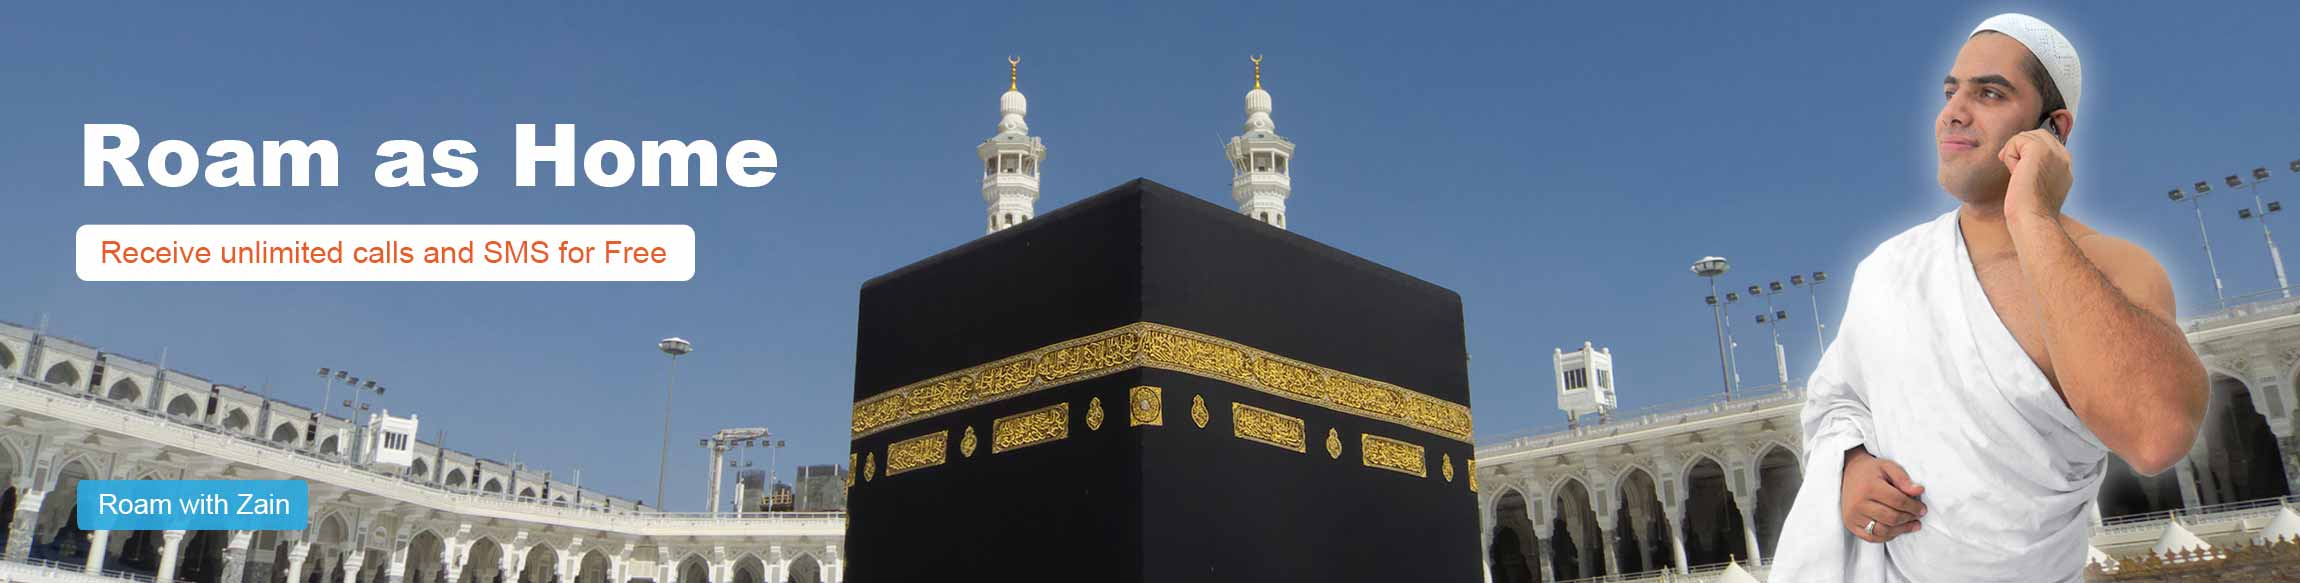 Hajj-Banner-English-2300-x-583px-1